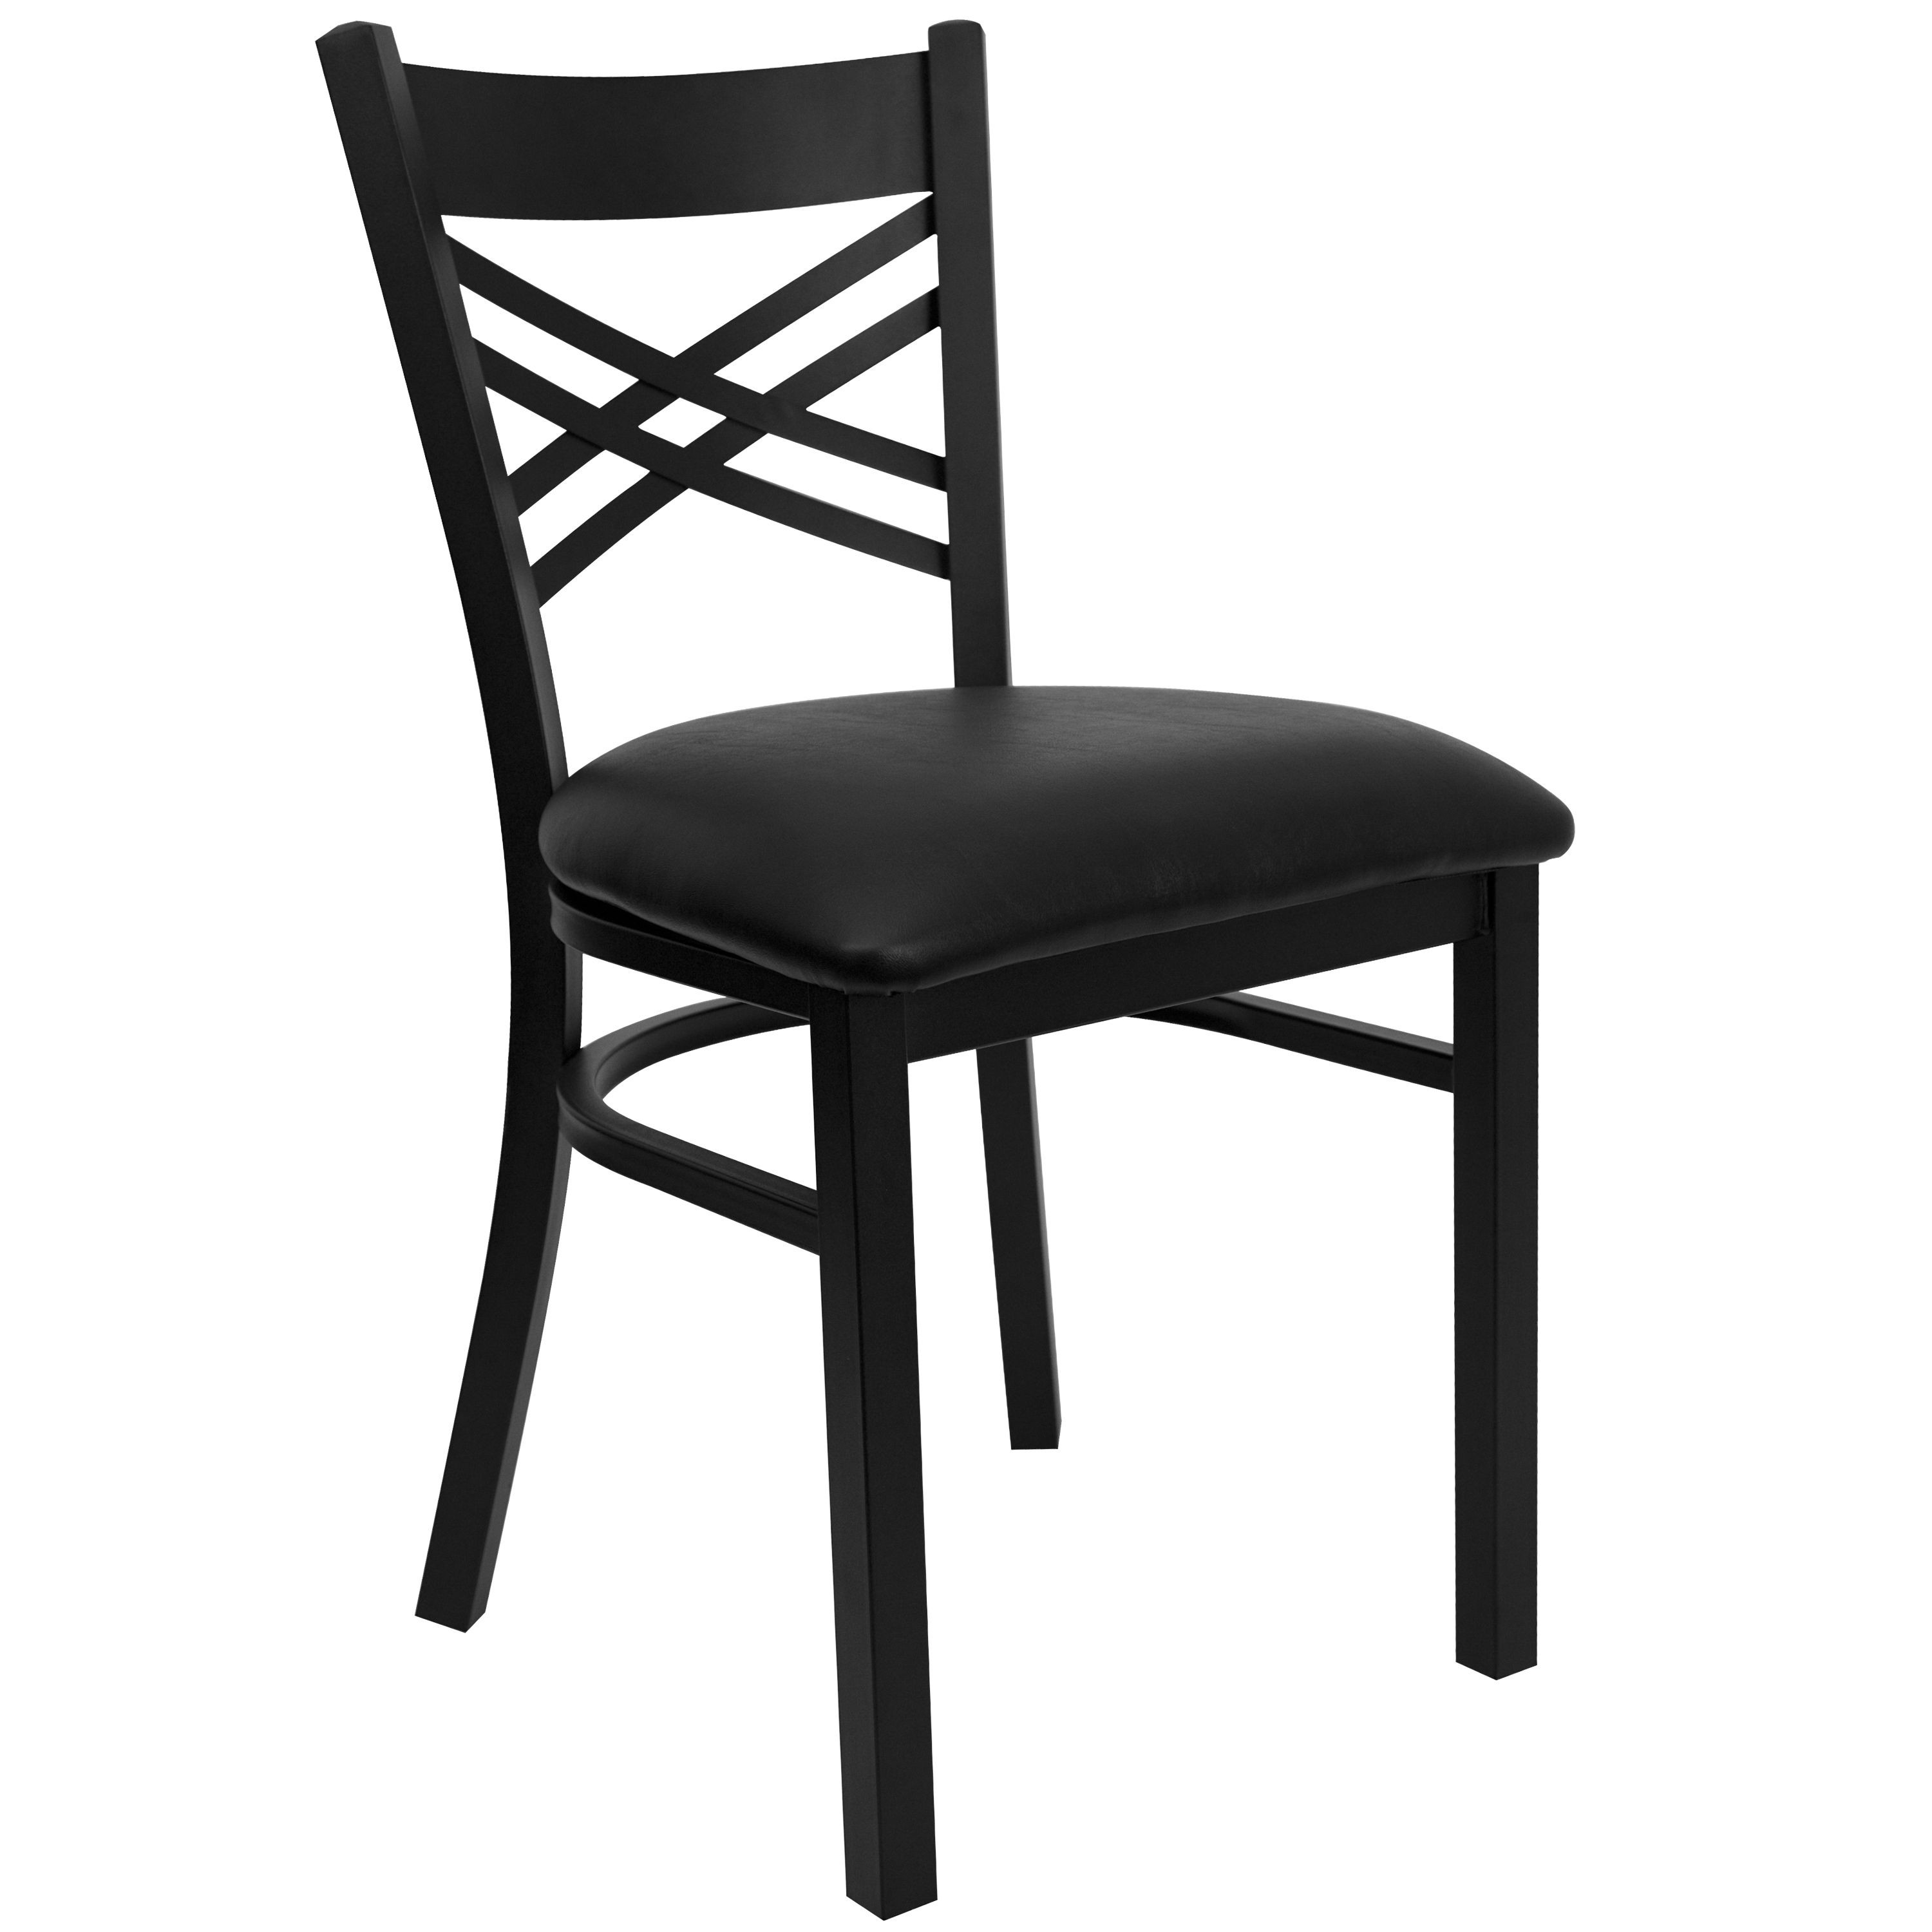 New Metal X Back Restaurant Chairs Black Vinyl Seat Lot Of 10 Free Shipping